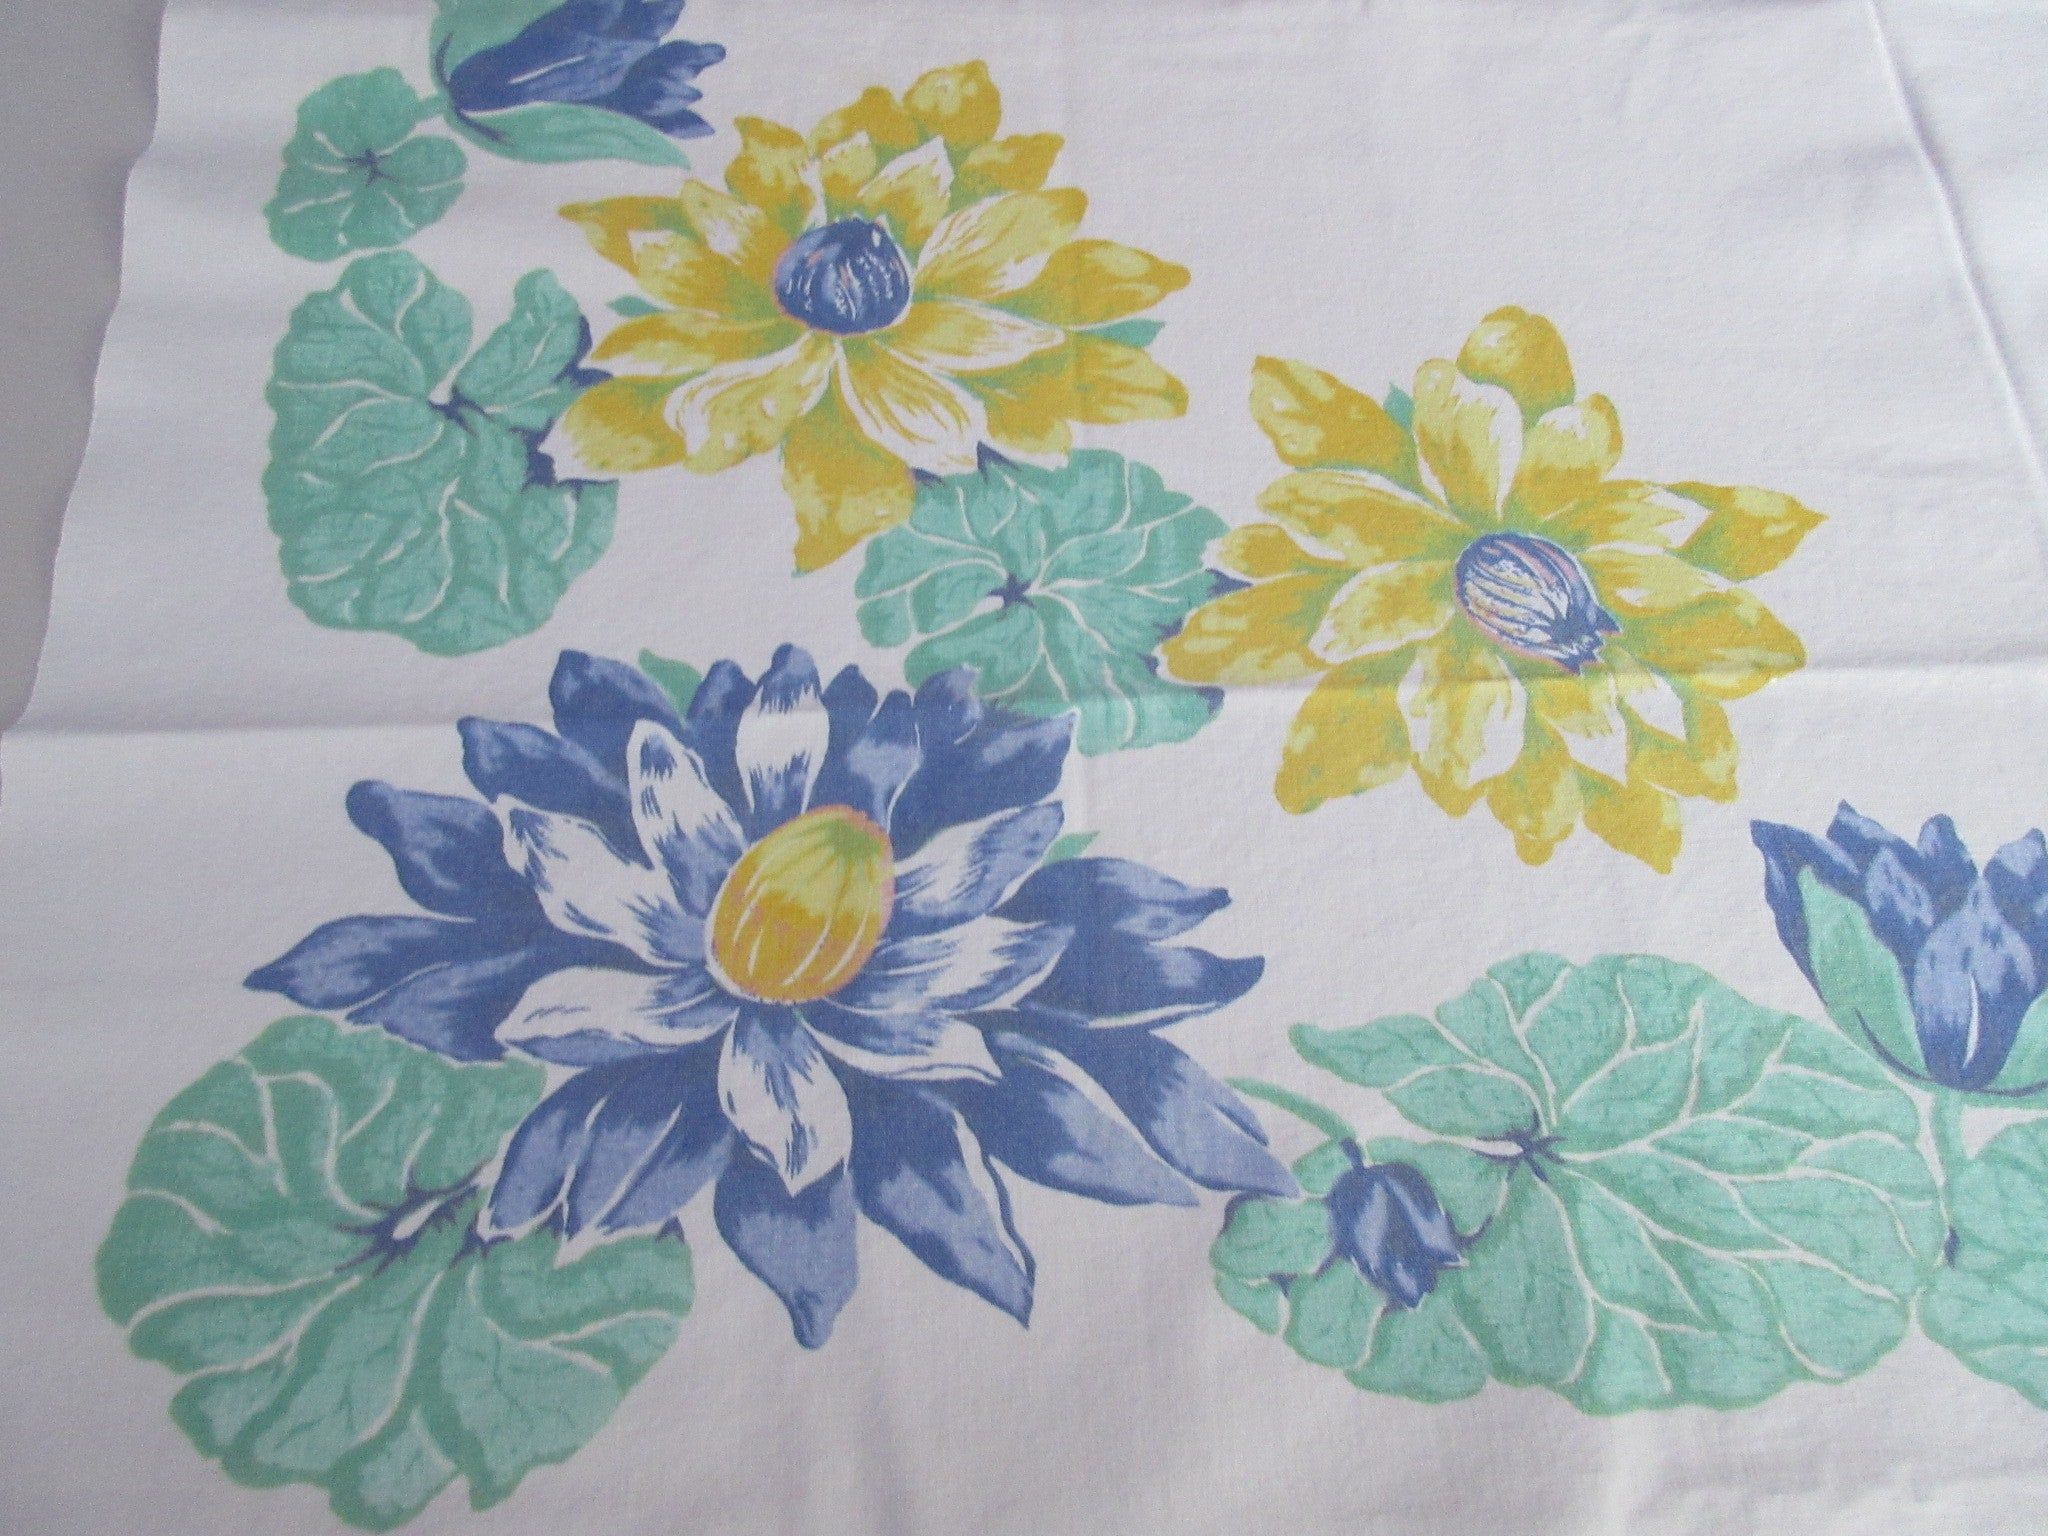 Heavy Pastel Blue Green Yellow Water Lilies Lily Pad Floral Vintage Printed Tablecloth (47 X 43)